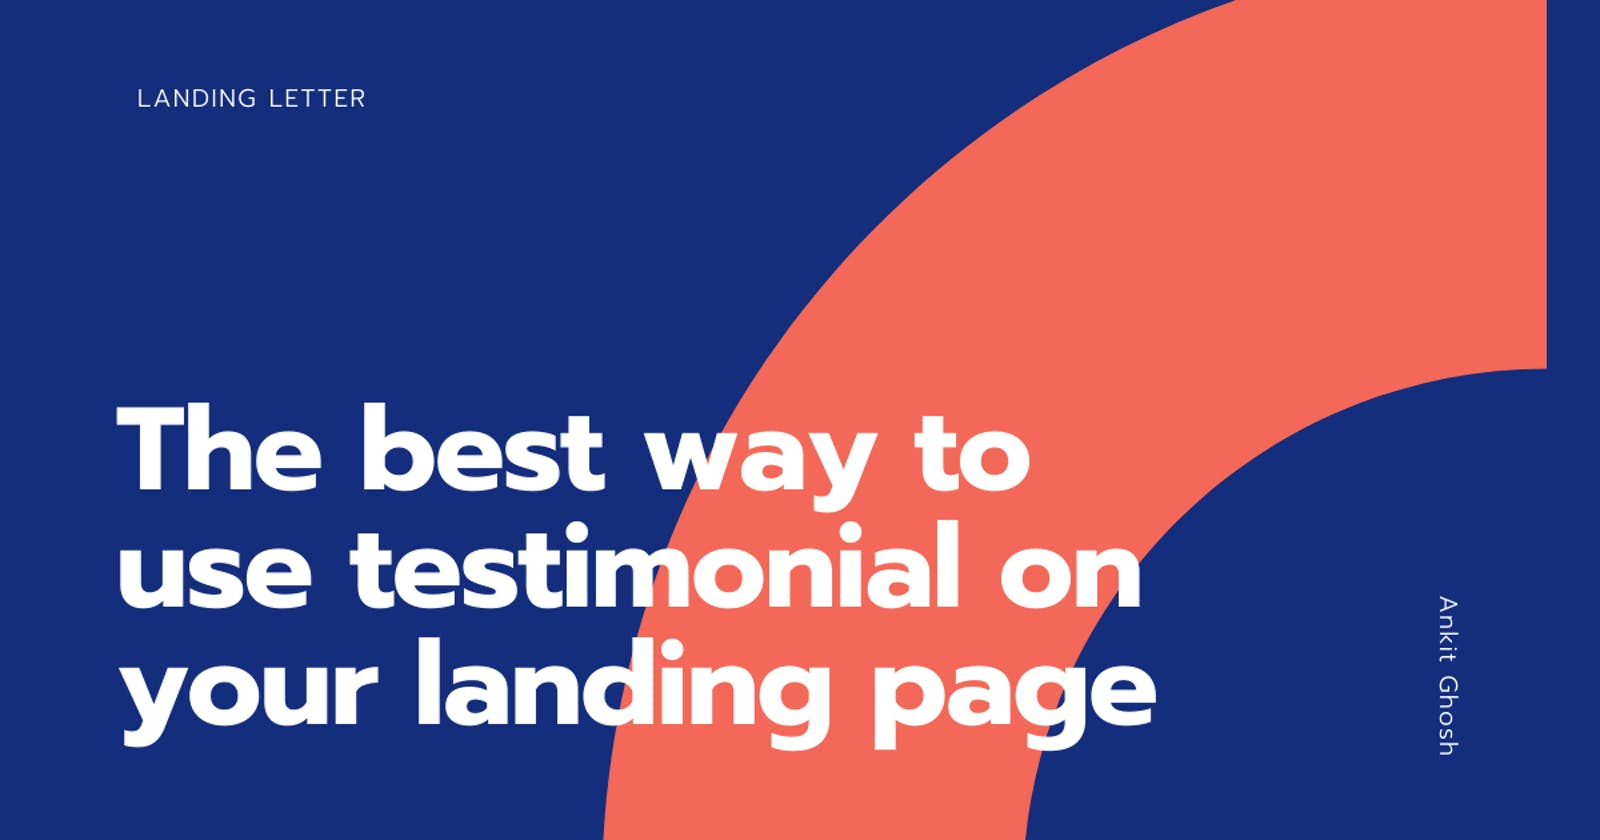 The proper way to write user testimonials on a landing page